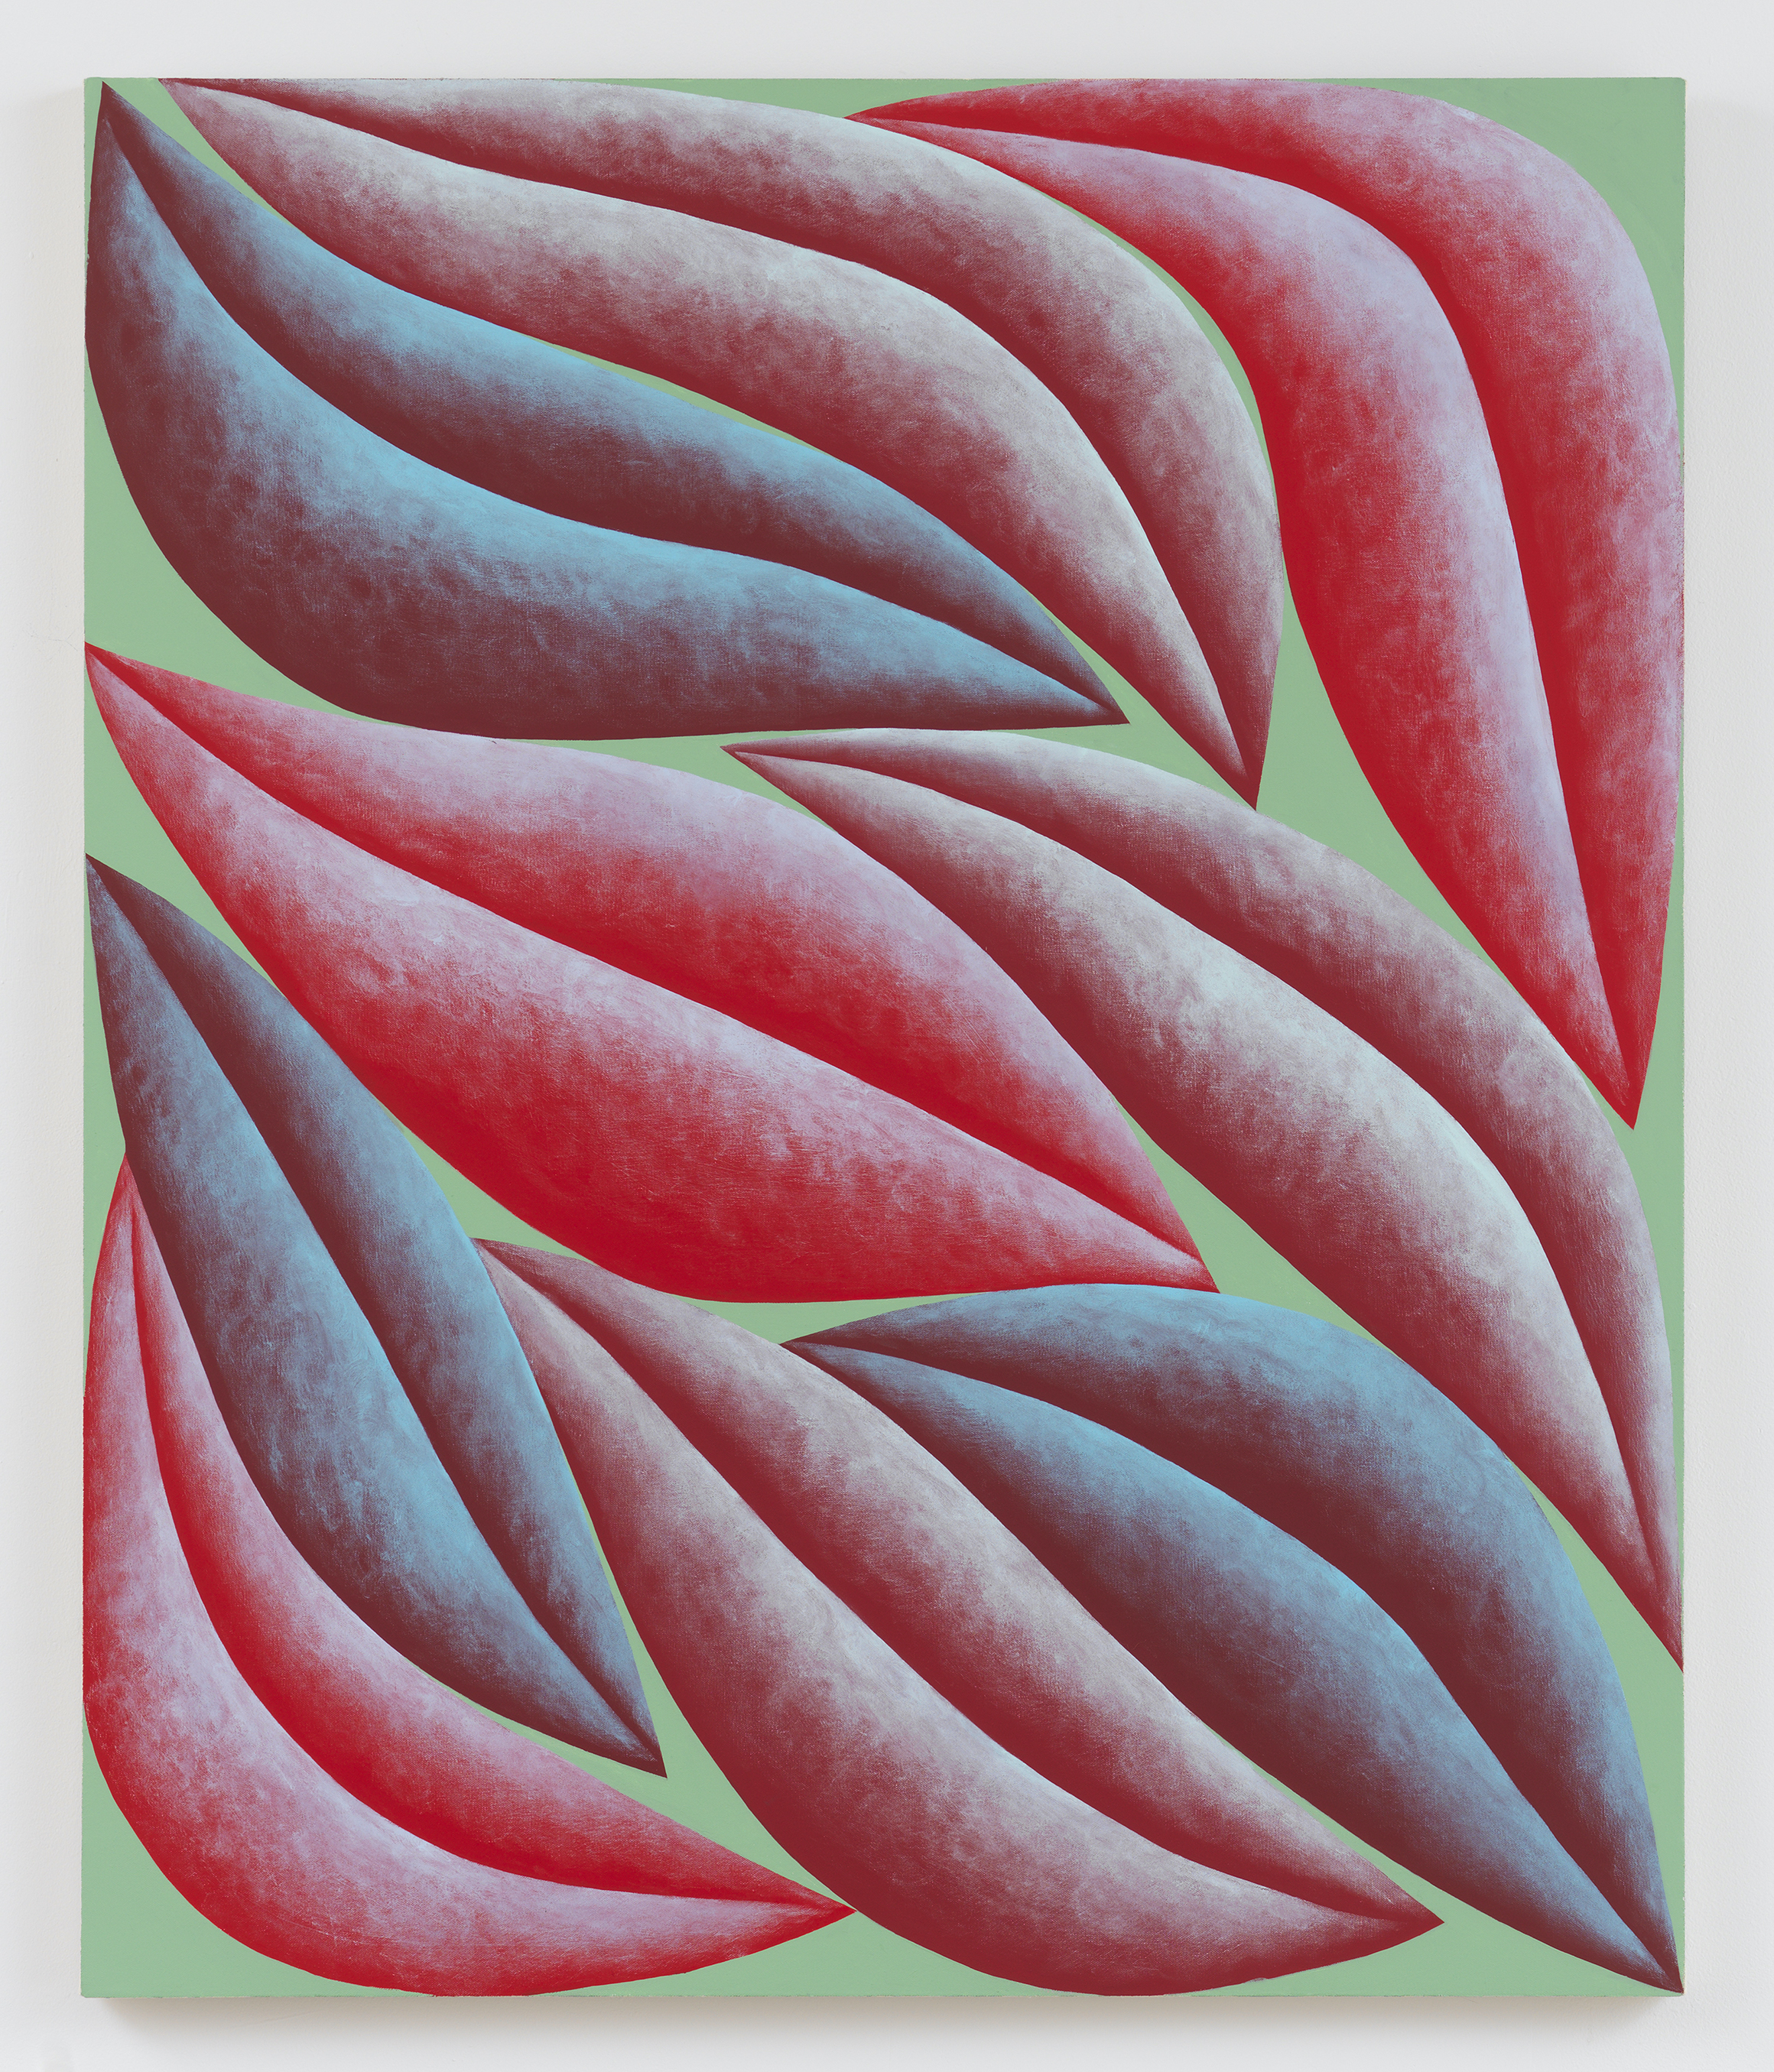 Corydon Cowansage, Red, Blue, Green, 2019, acrylic and vinyl paint on canvas, 20 x 18 inches